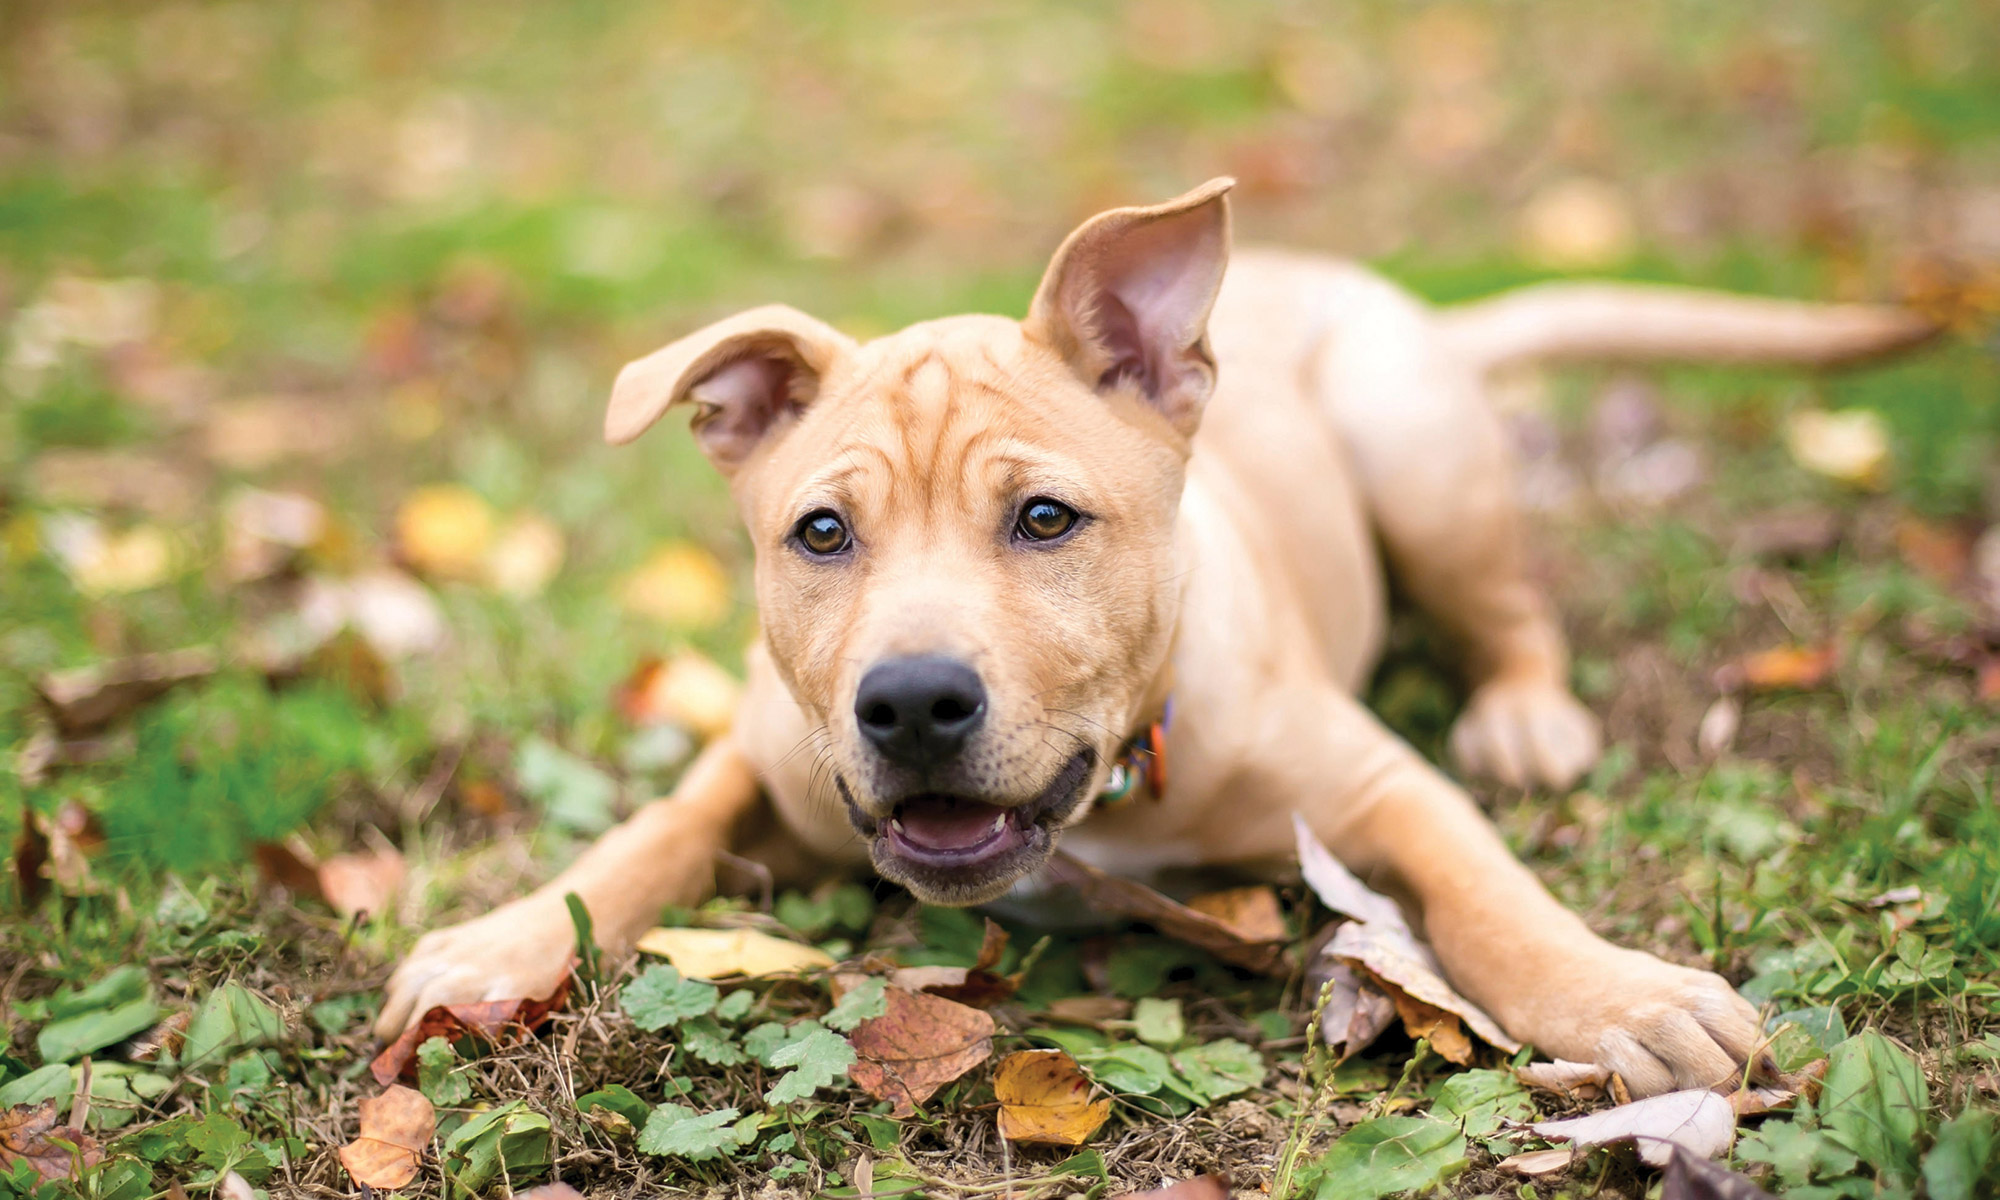 Dogs | The Humane Society of the United States